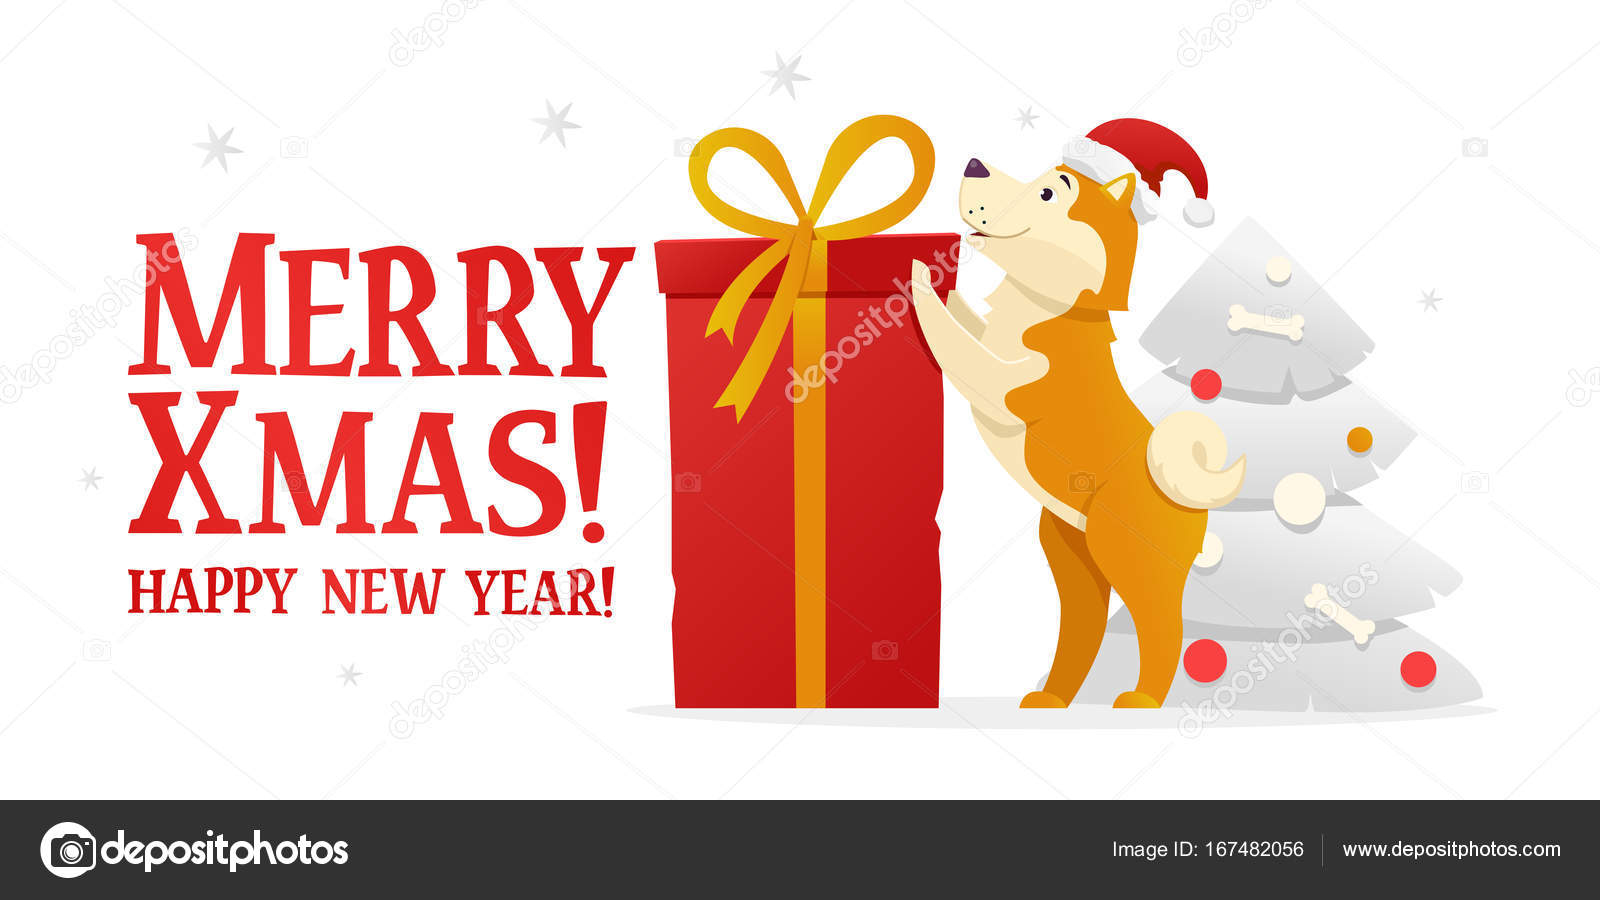 merry christmas and happy new year postcard template with the cute yellow dog with the big